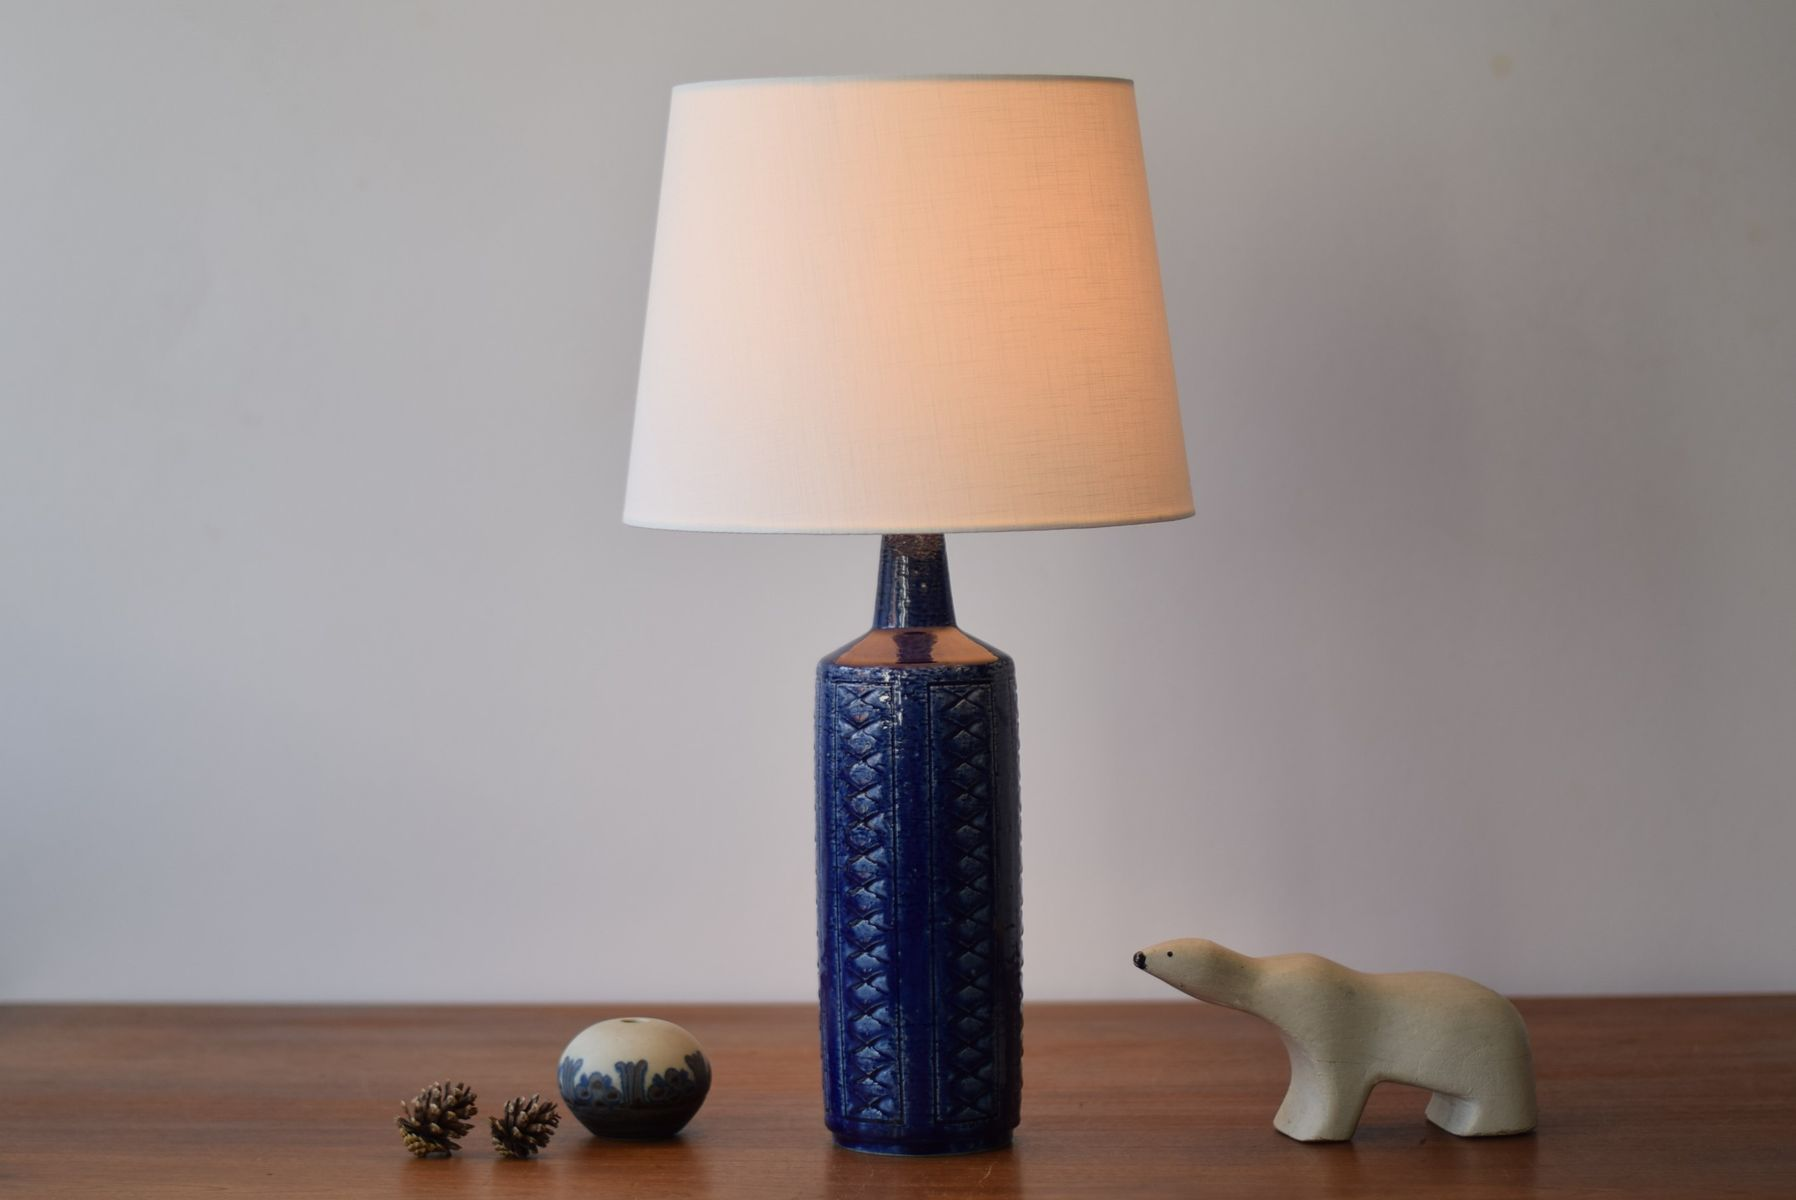 Blue table lamp by per for palshus s with chaise schmidt for Chaise schmidt